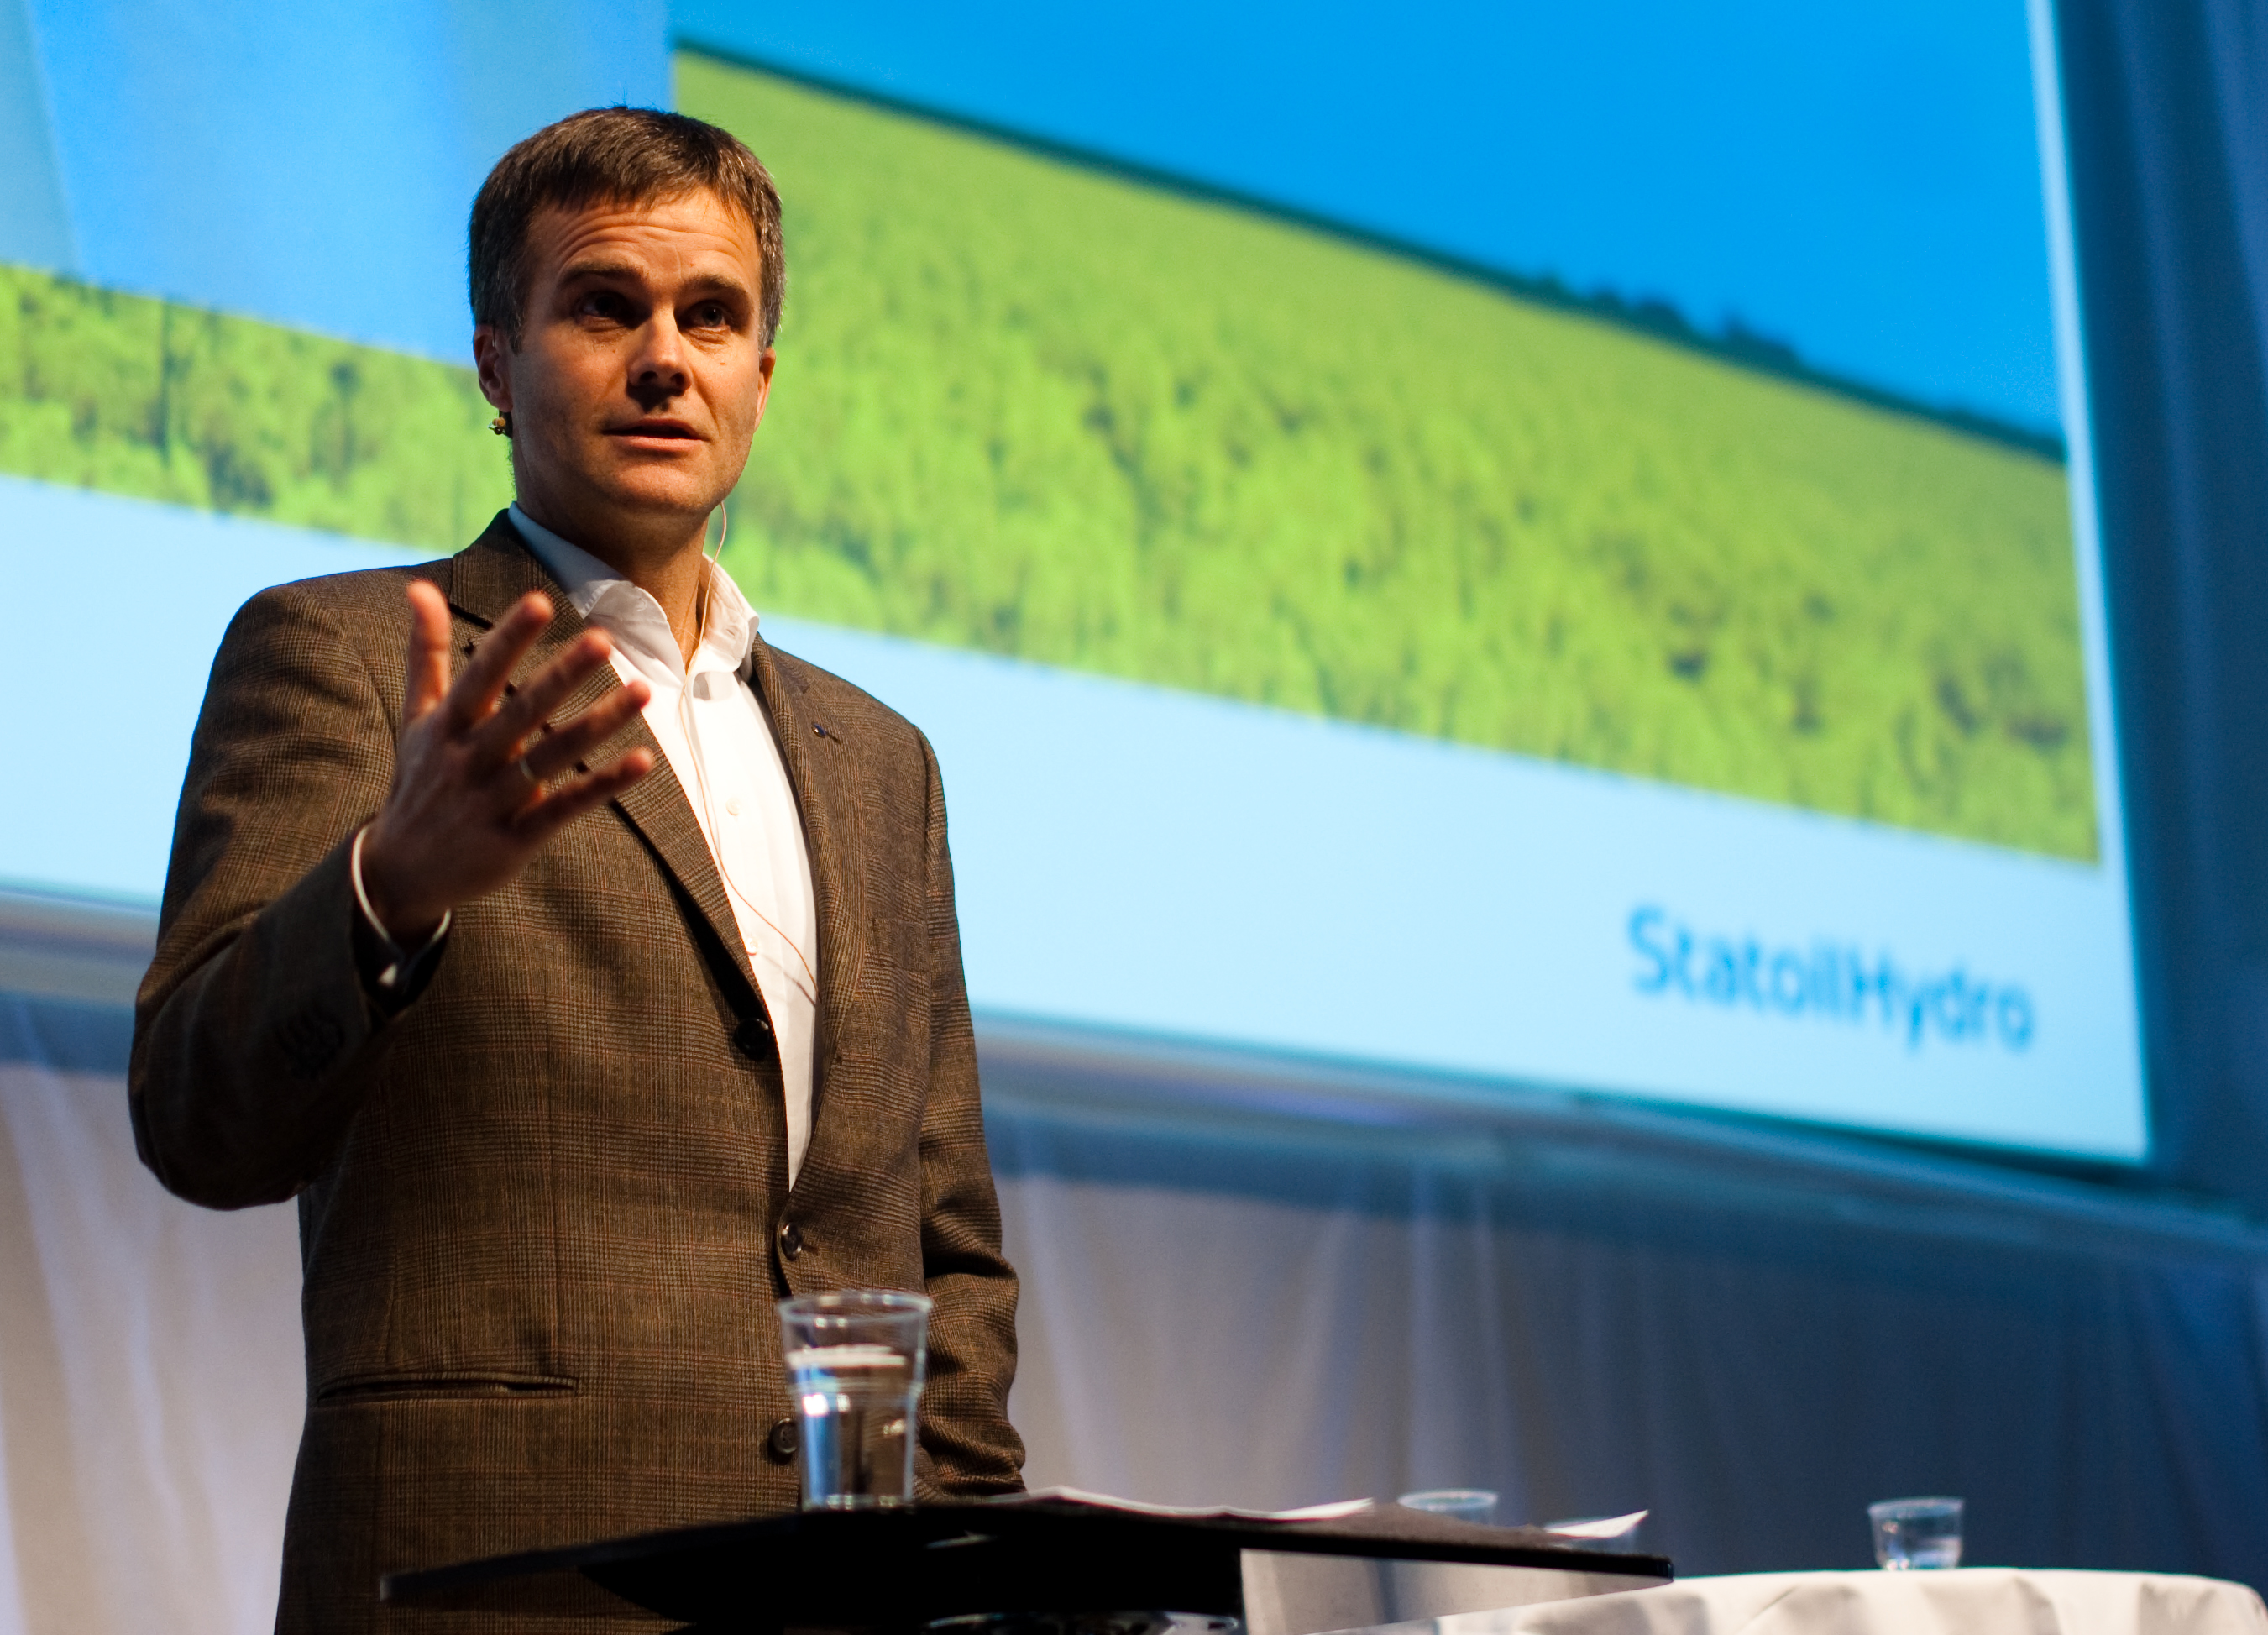 Helge Lund, CEO - StatoilHydro